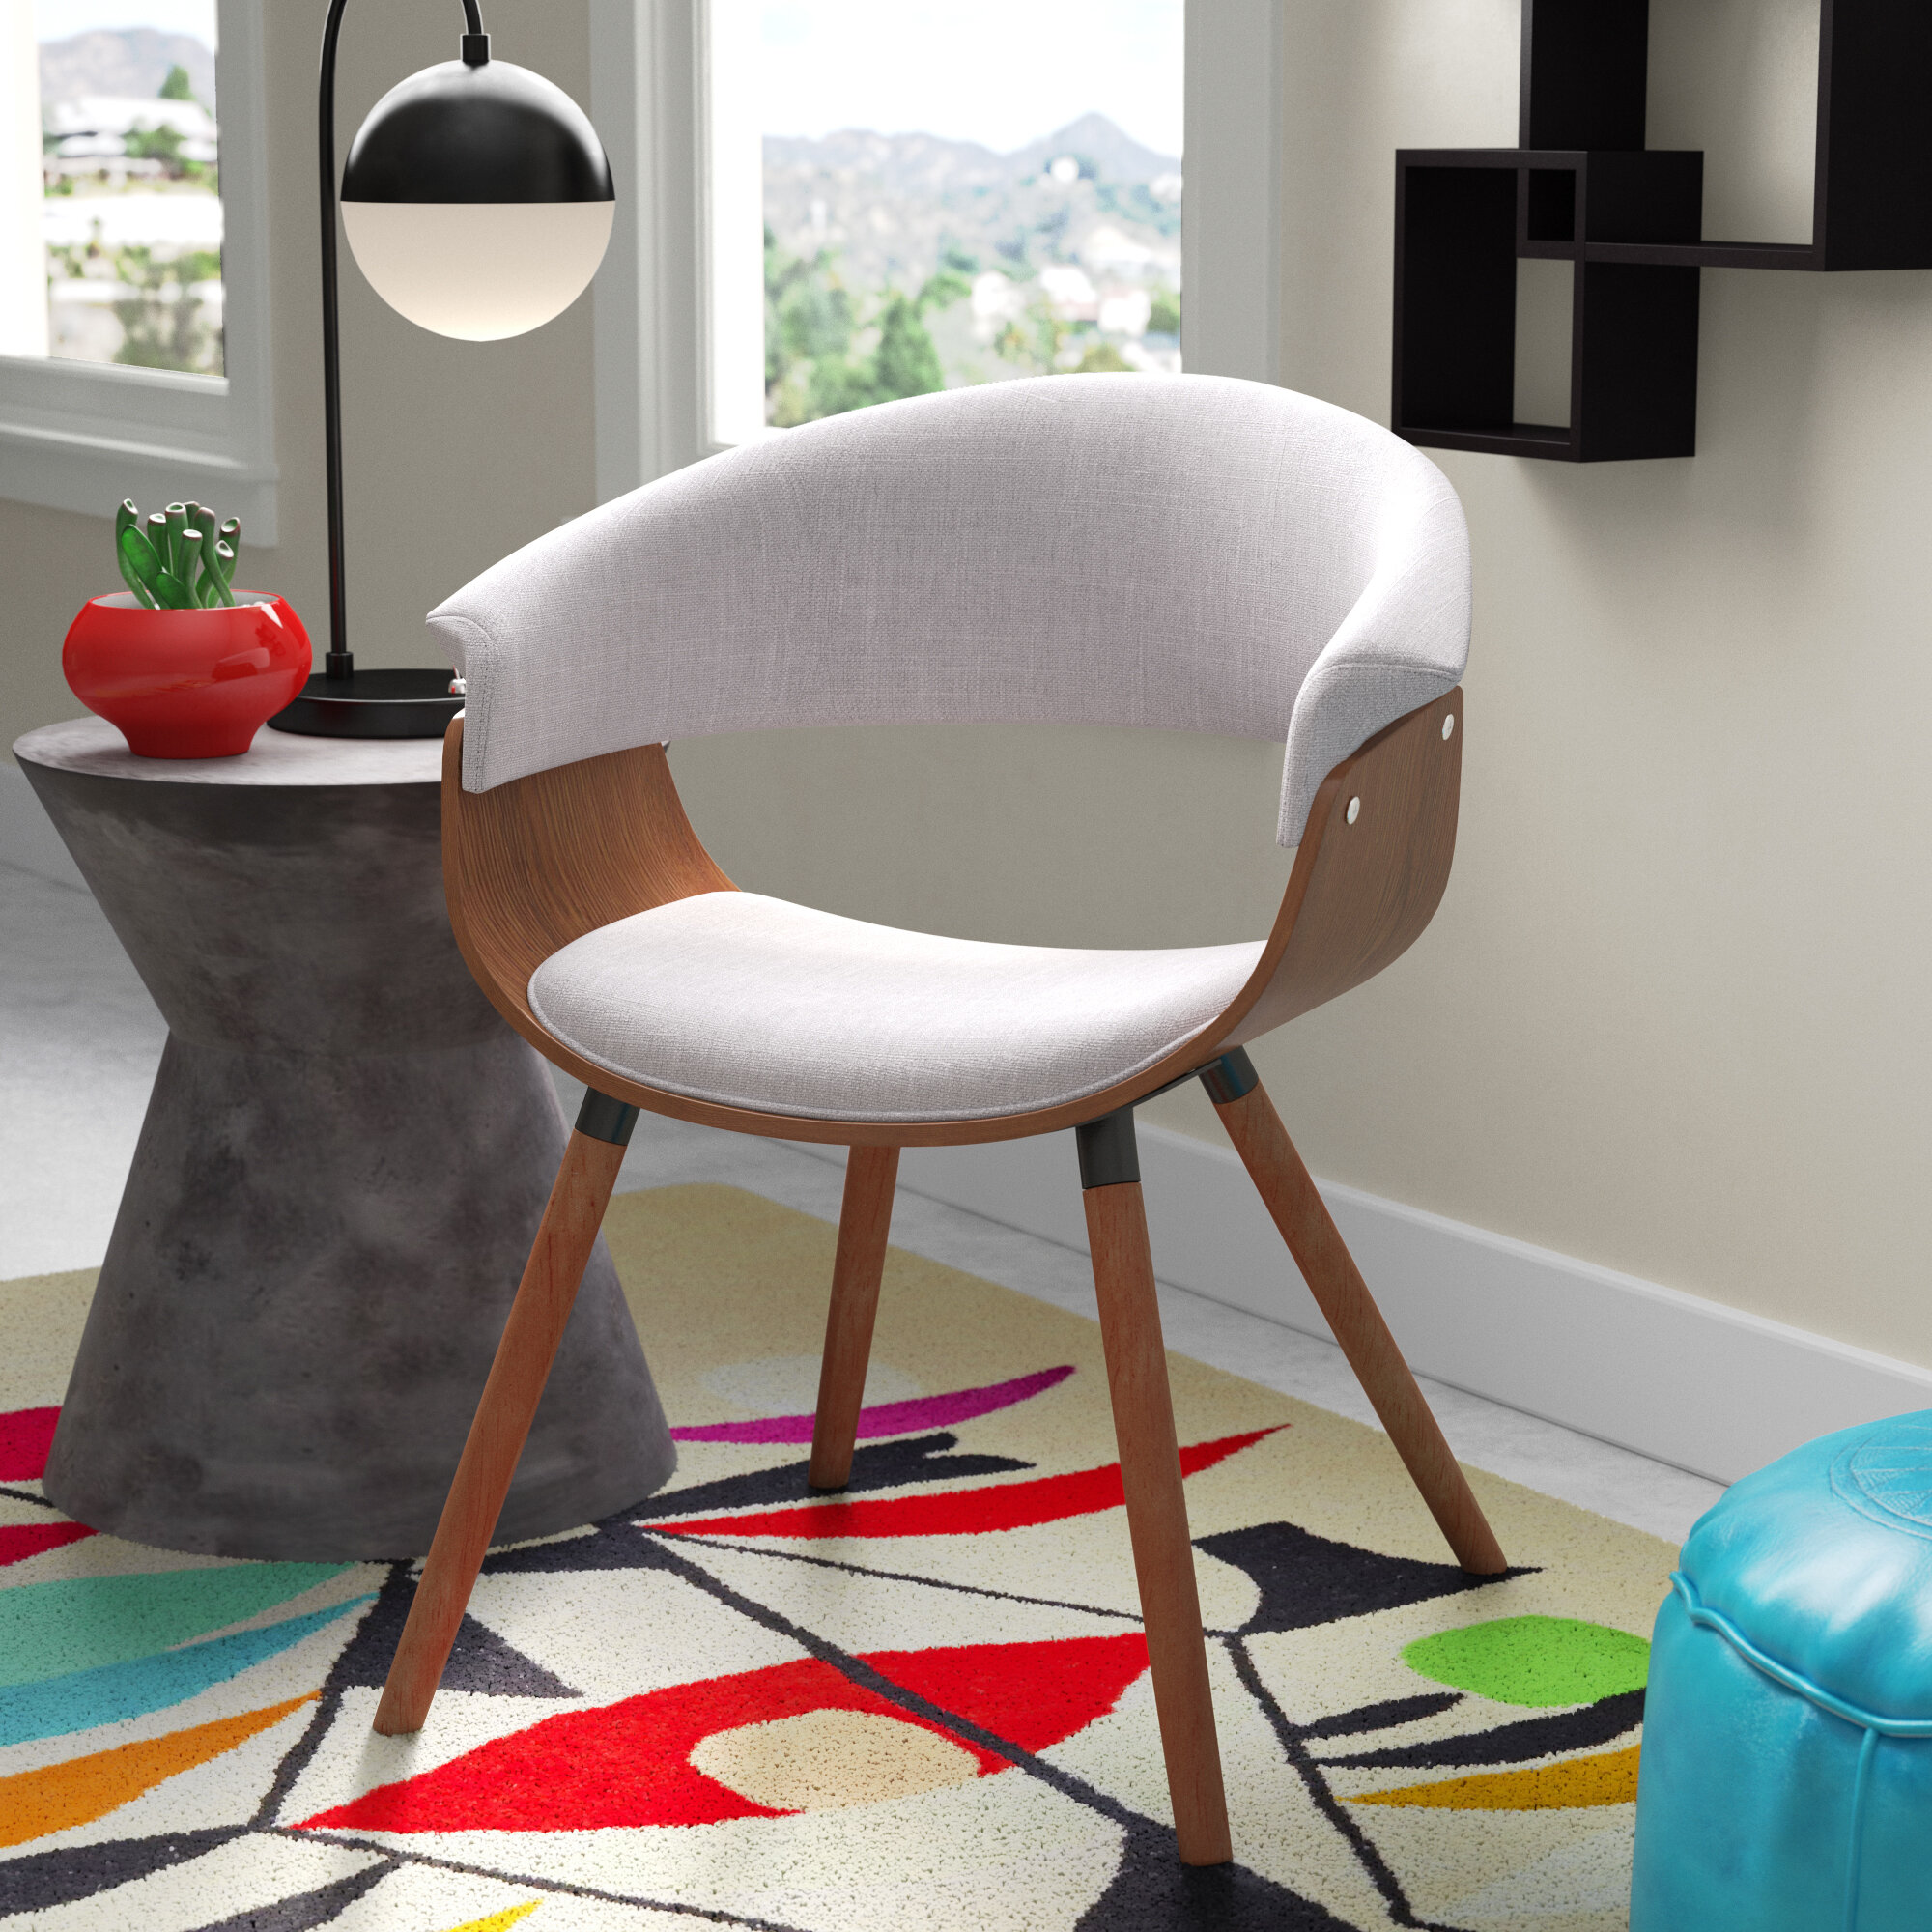 Langley street zoe side chair reviews wayfair ca